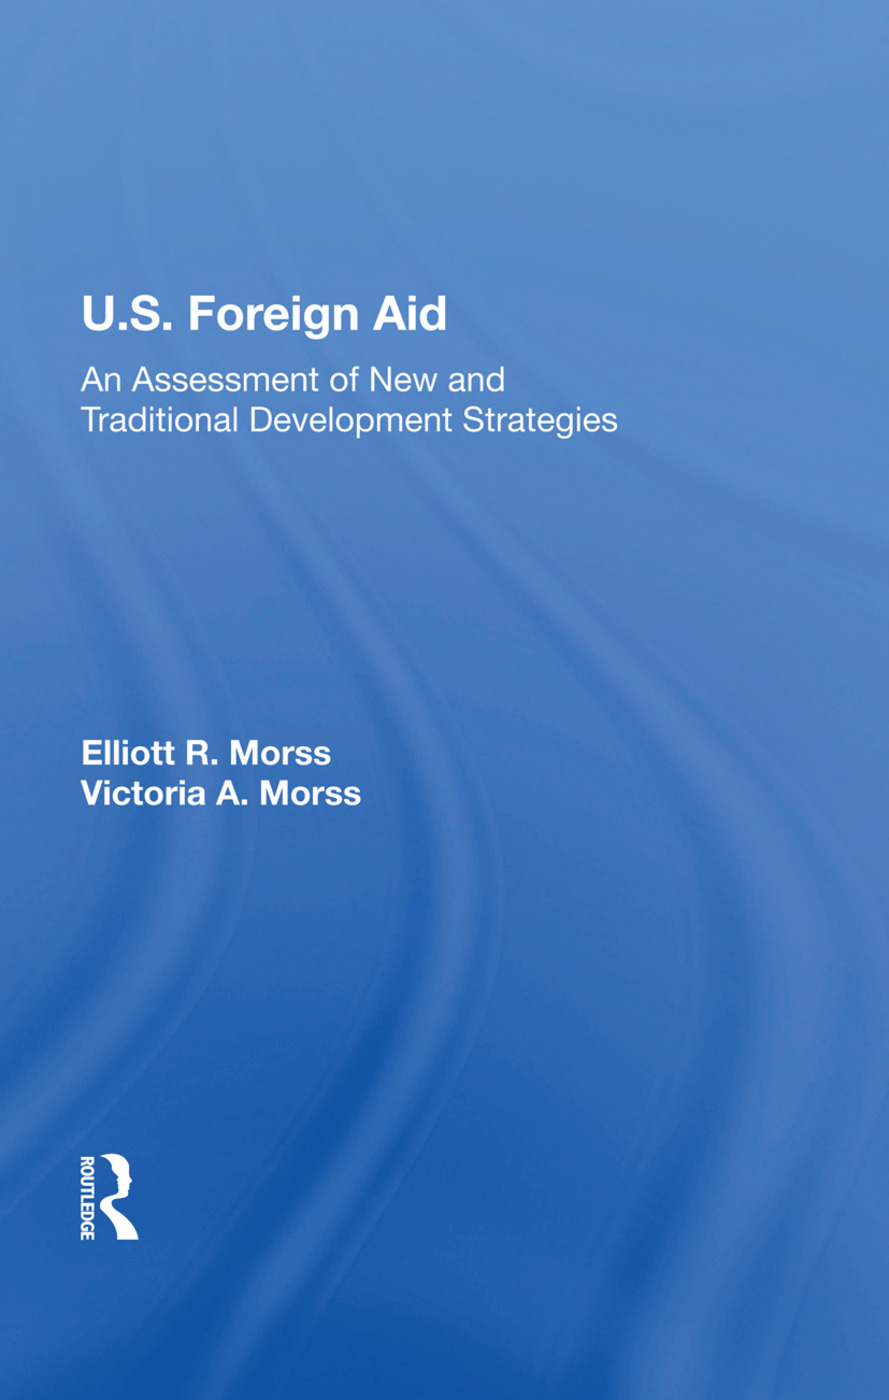 U.S. Foreign Aid: An Assessment Of New And Traditional Development Strategies book cover